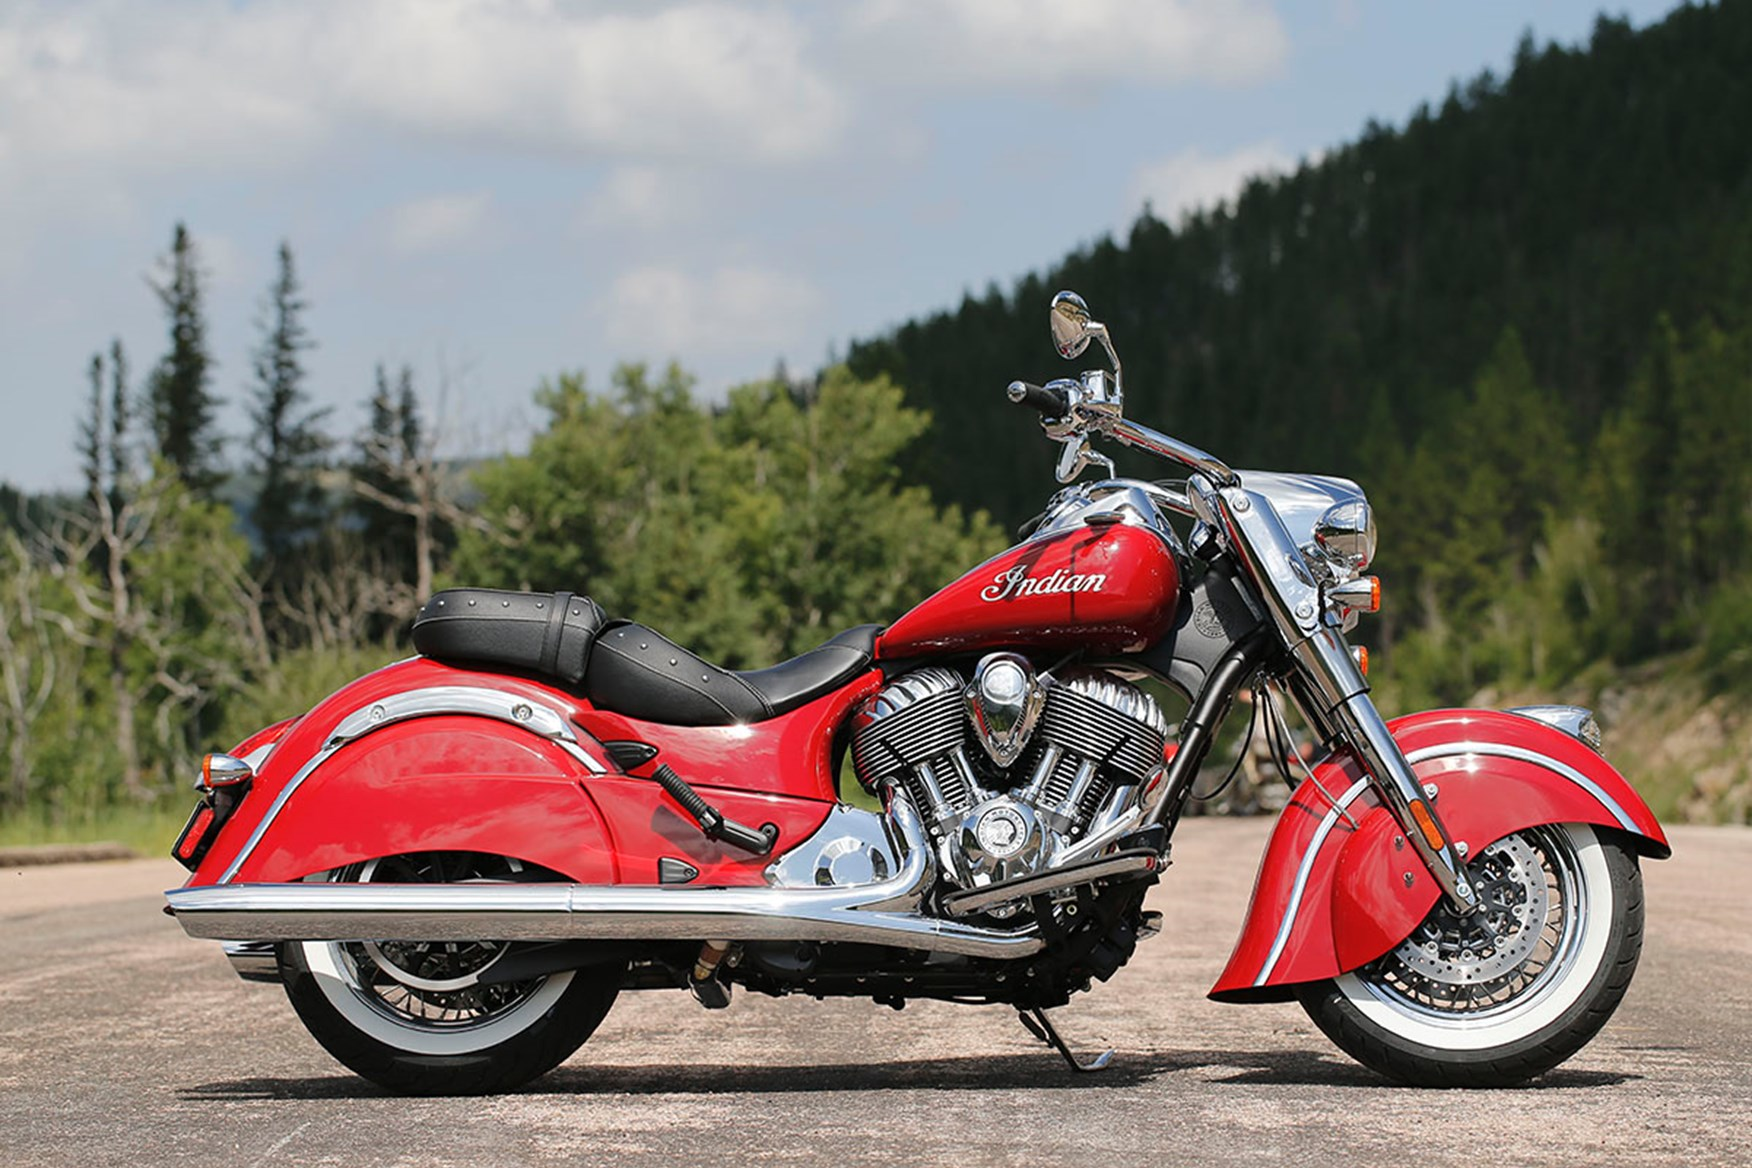 Victory Cruiser Deluxe 1500 1999 images #129325